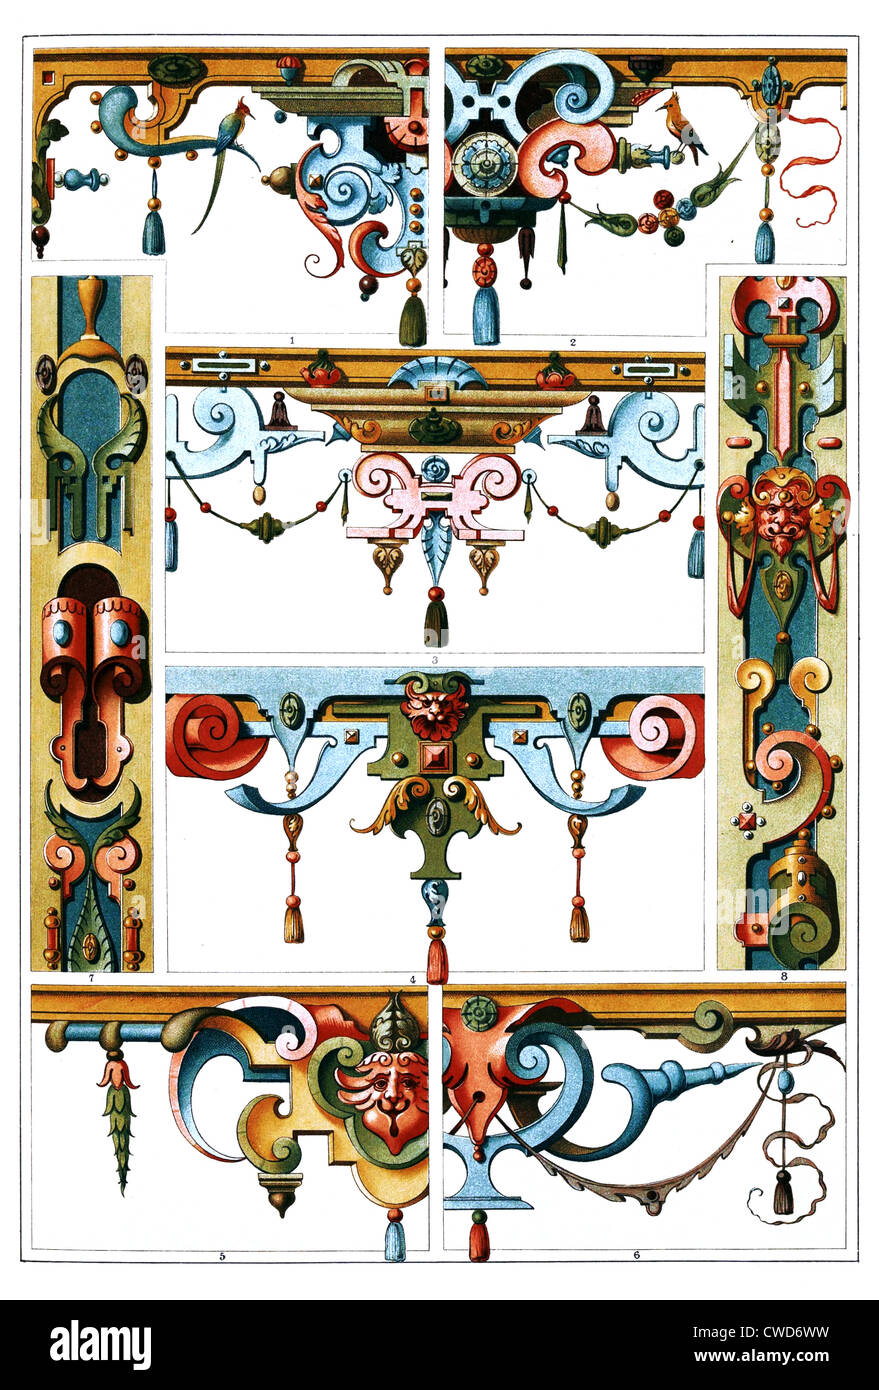 Renaissance German Mural painting and sculptural ornaments of stone and wood - Stock Image